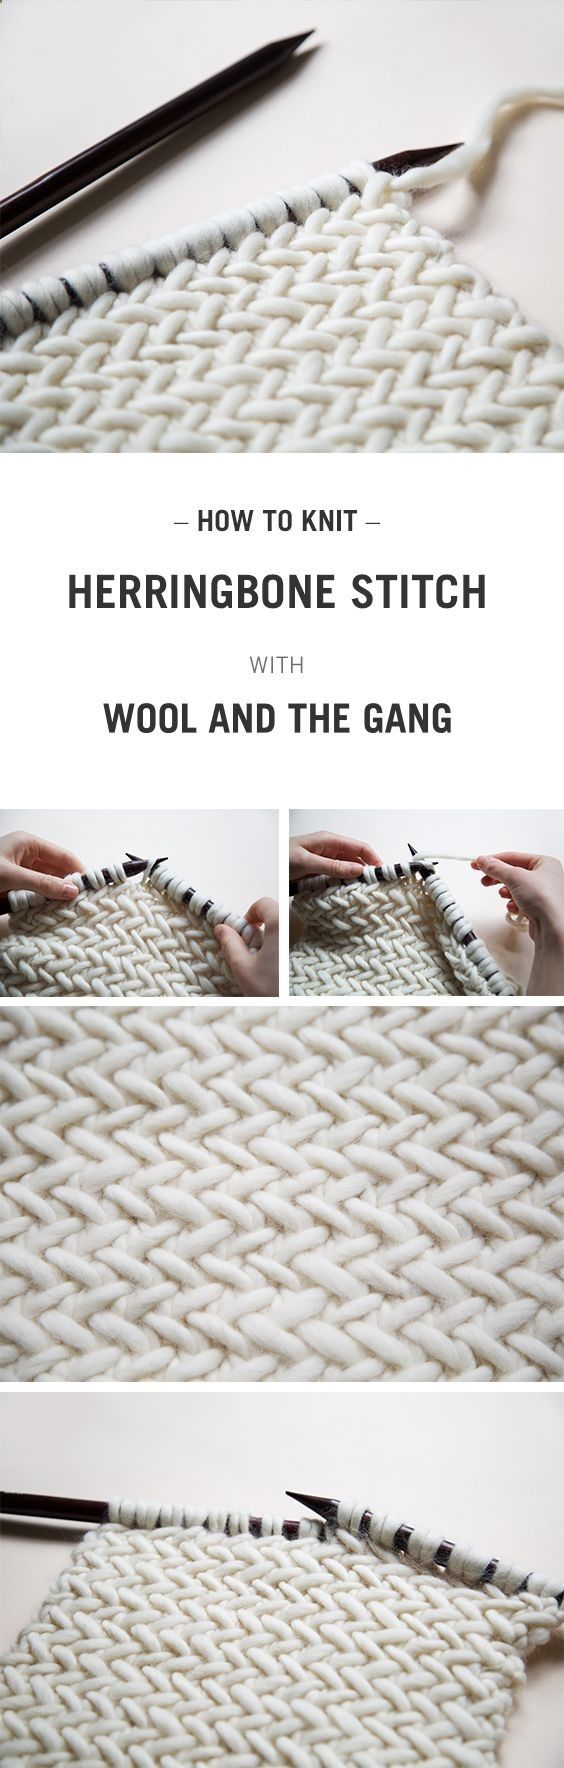 COMMENT TRICOTER LA POINTE D'HERRINGBONE AVEC DE LA LAINE ET LE GANG :) – Second Crafting   – diy